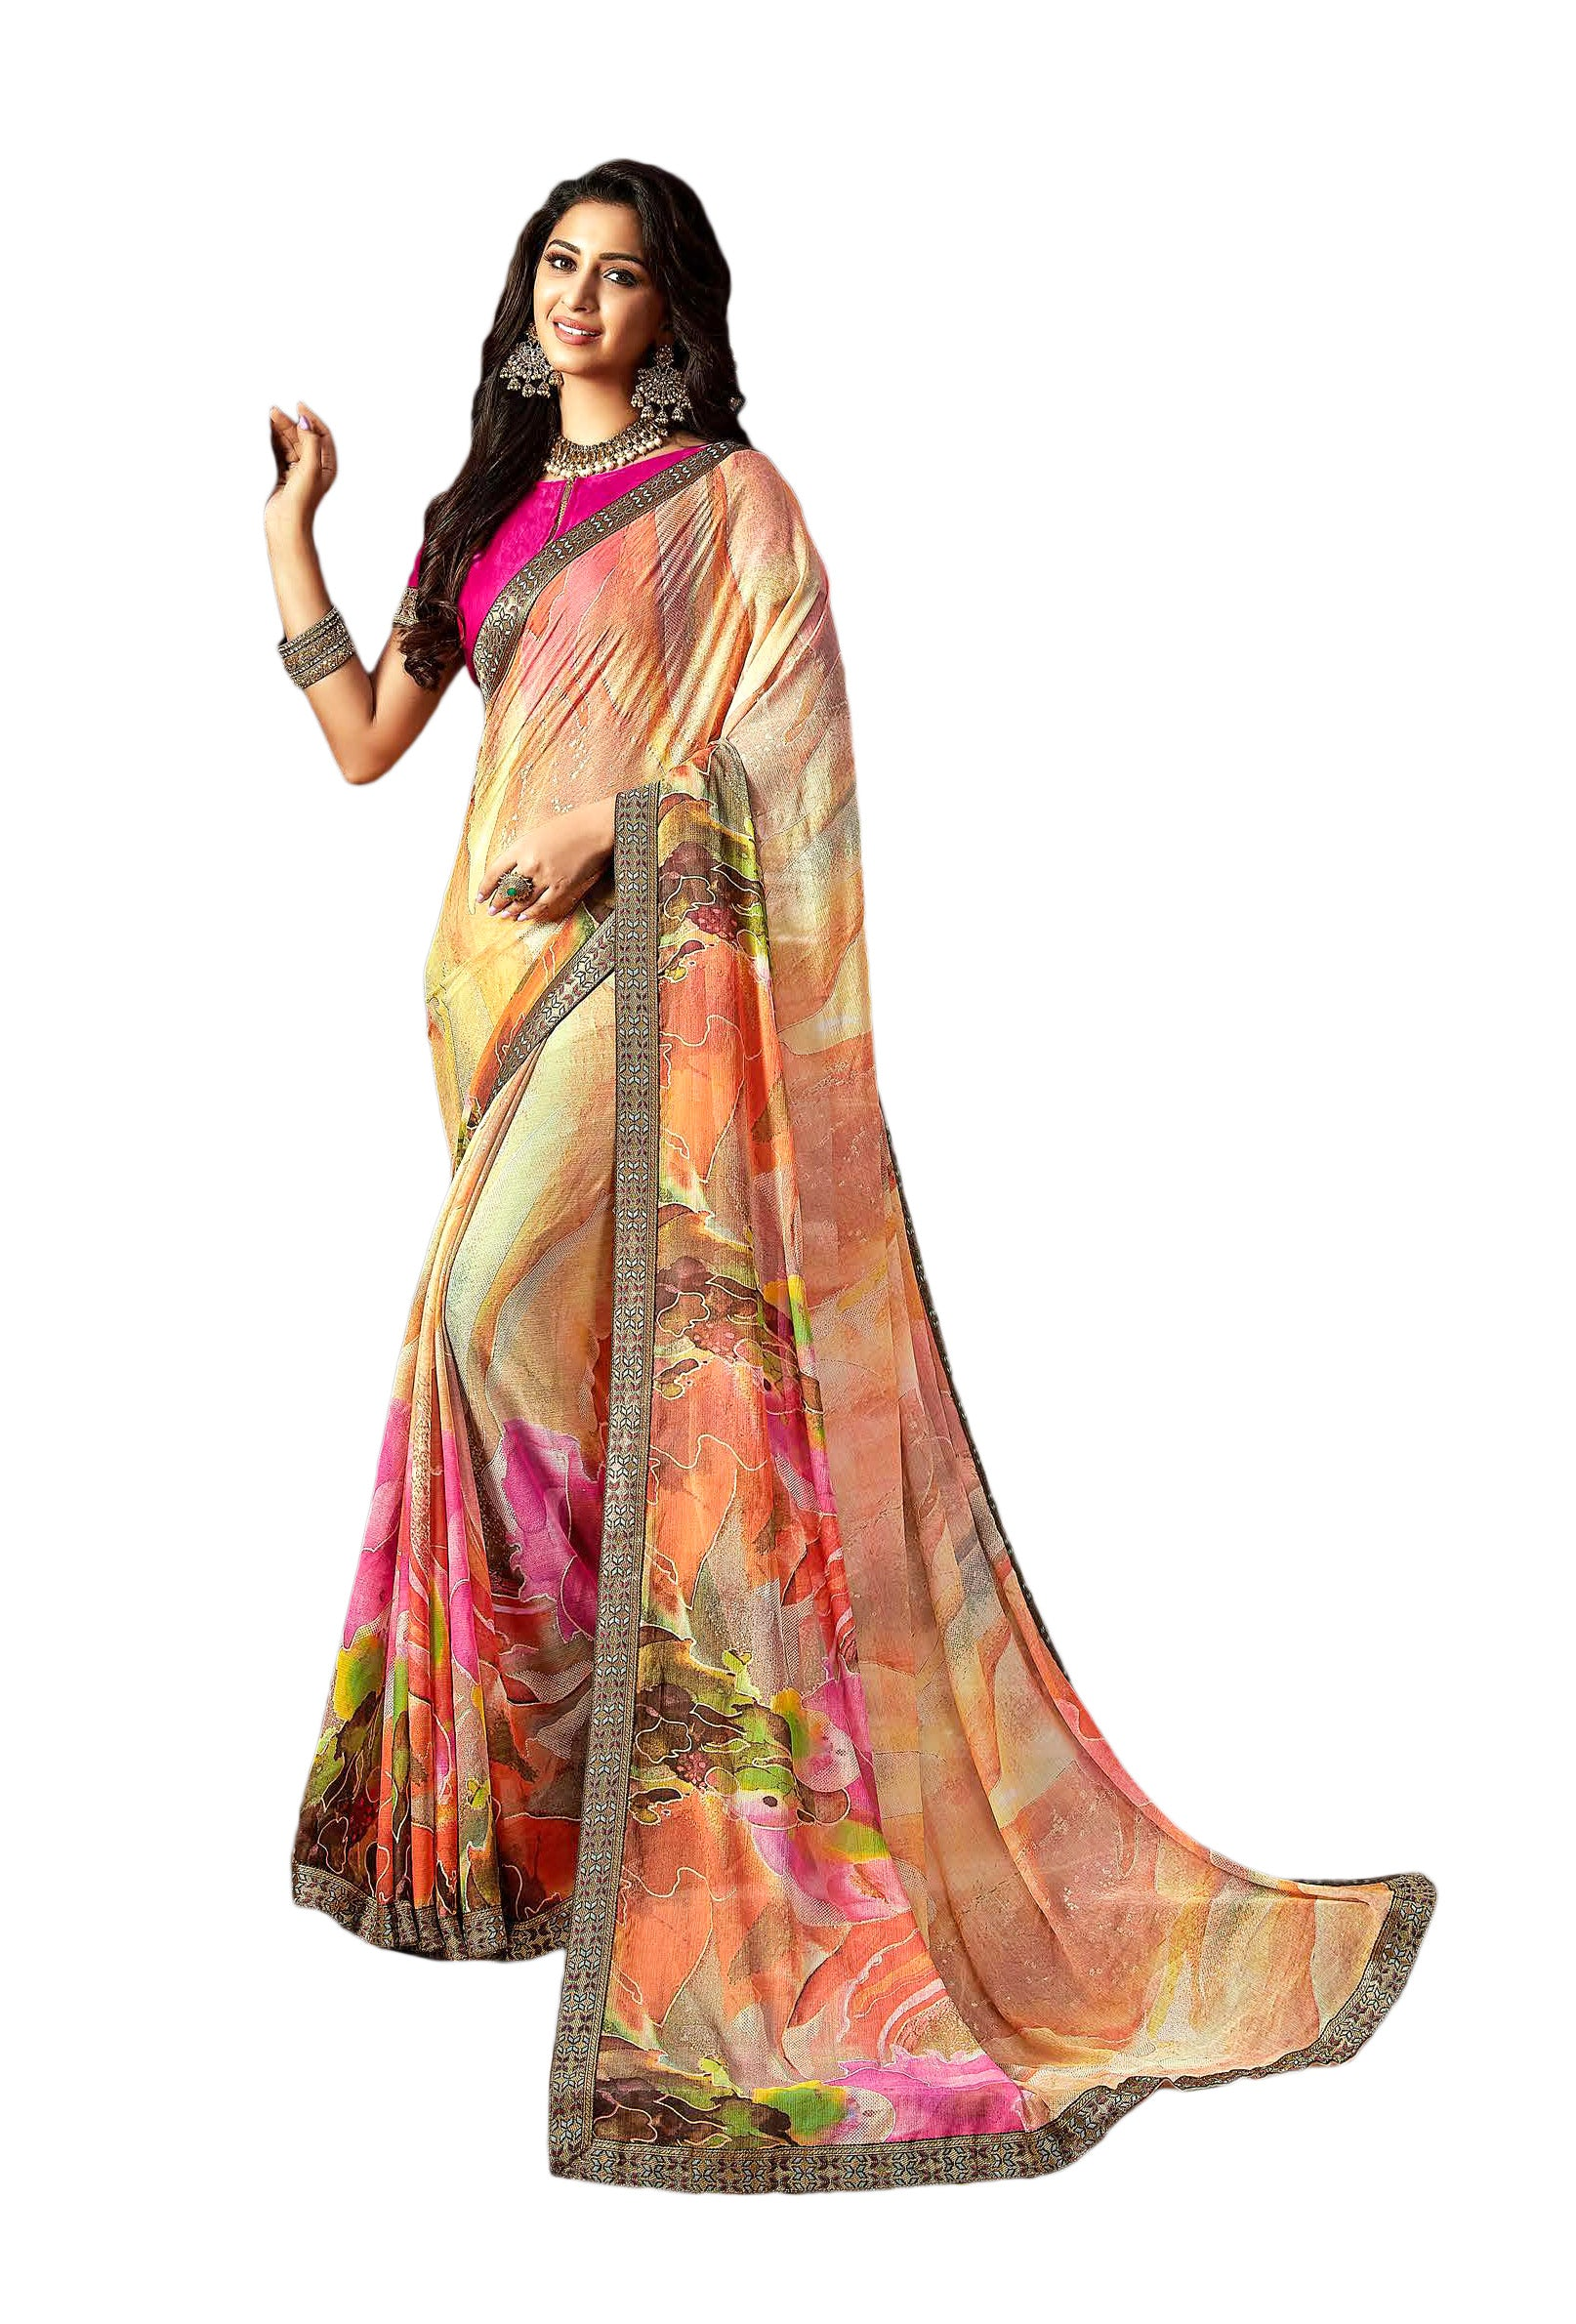 Sansakar Manorama  Printed Chiffon Saree (Multicolor) By Indians Boutique